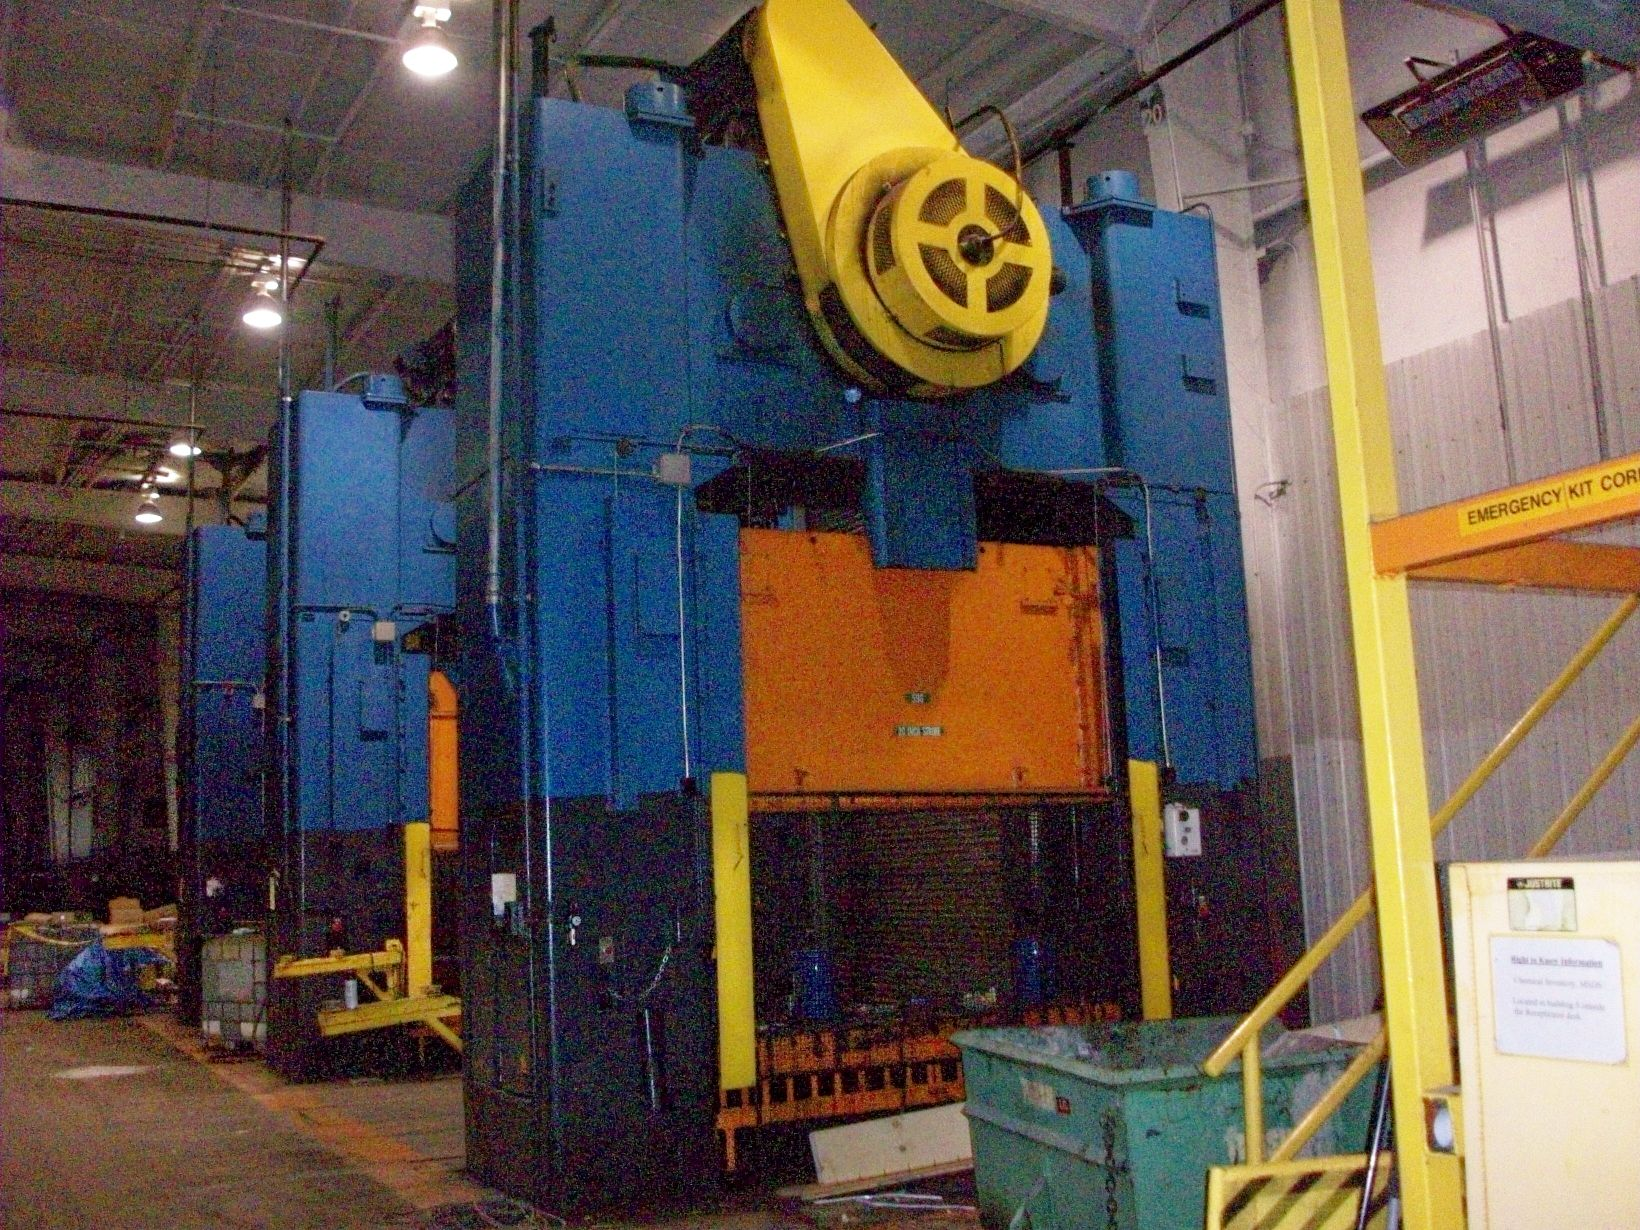 (1) PREOWNED 600 TON VERSON S.S.D.C. PRESS, MODEL SE2-600-<br>108-42, S/N 18918, YEAR 1965, WITH 42 in X108 in  T-SLOTTED BOLSTER <br>PLATE